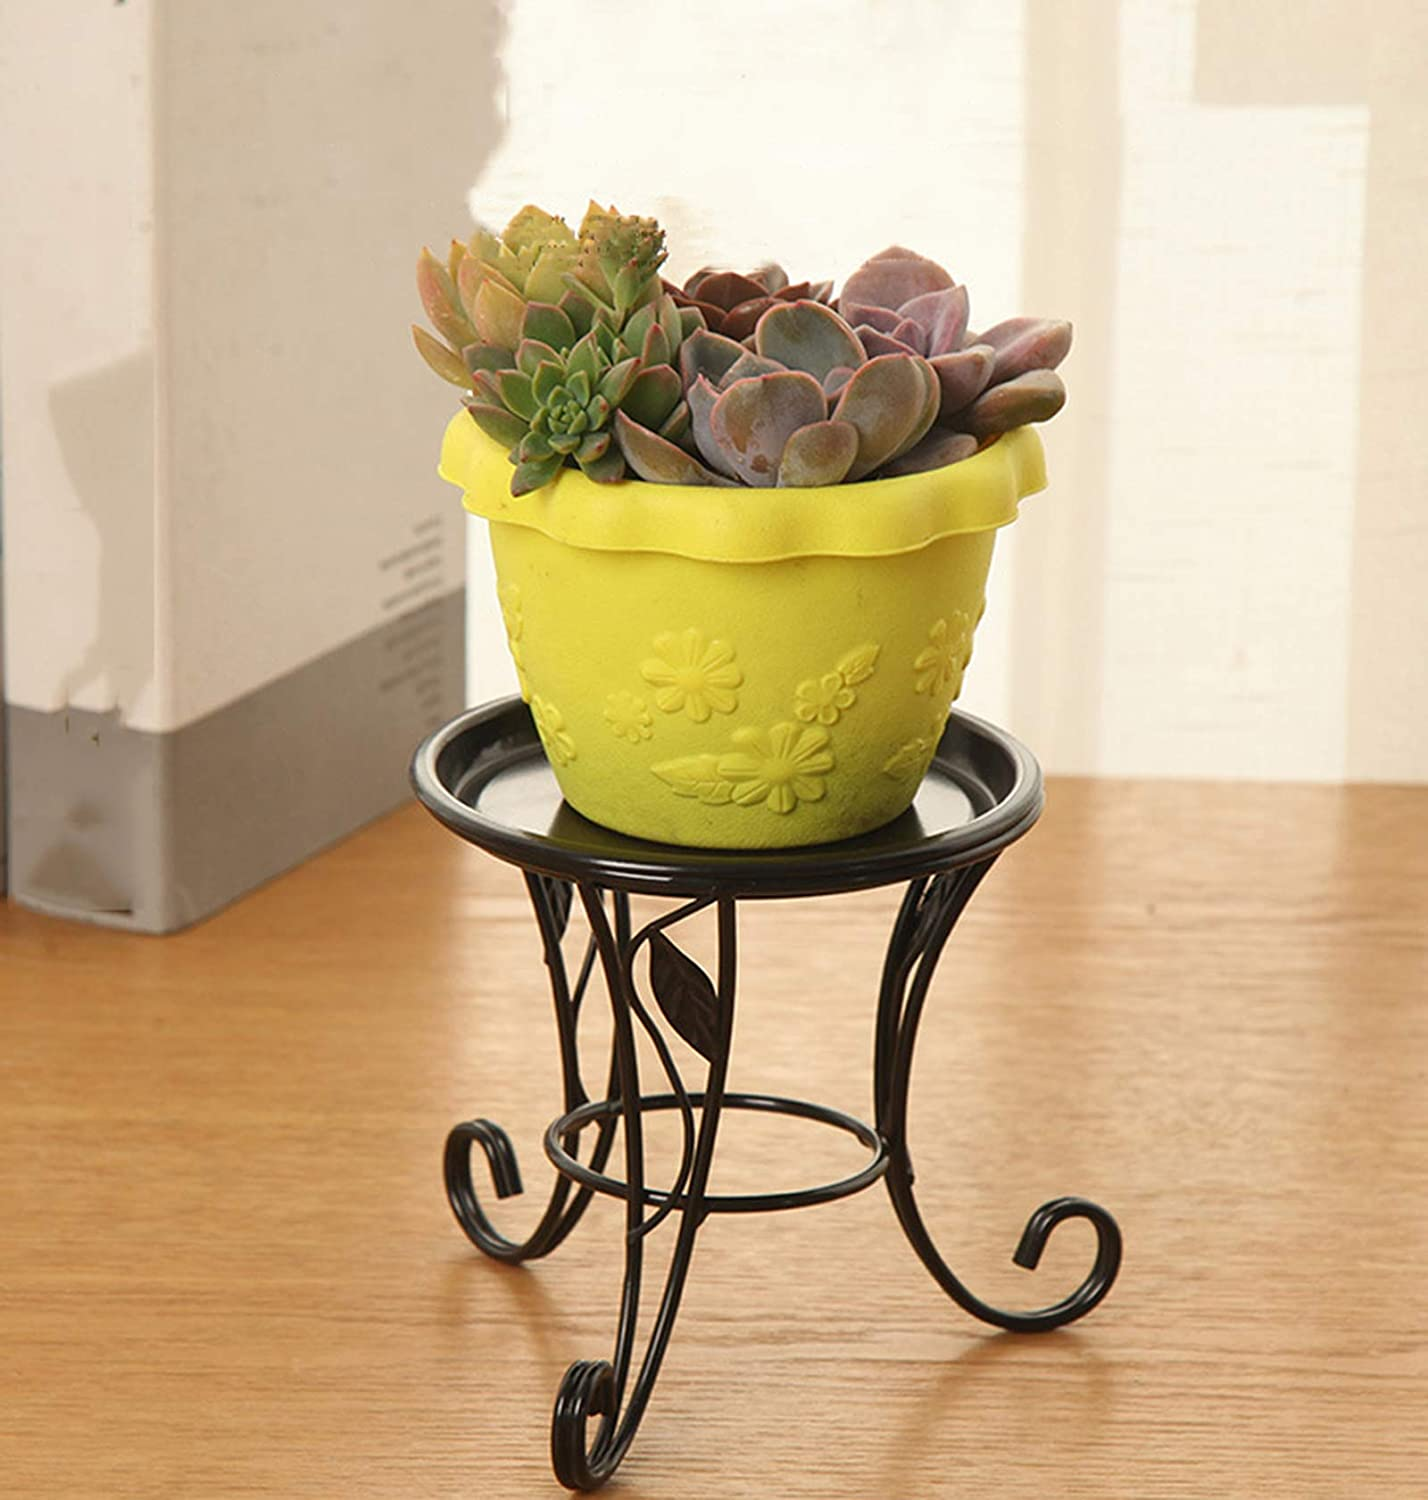 LYYJF Potted Plant Stand Holder Metal Max 43% OFF Flower Rack Display Max 60% OFF